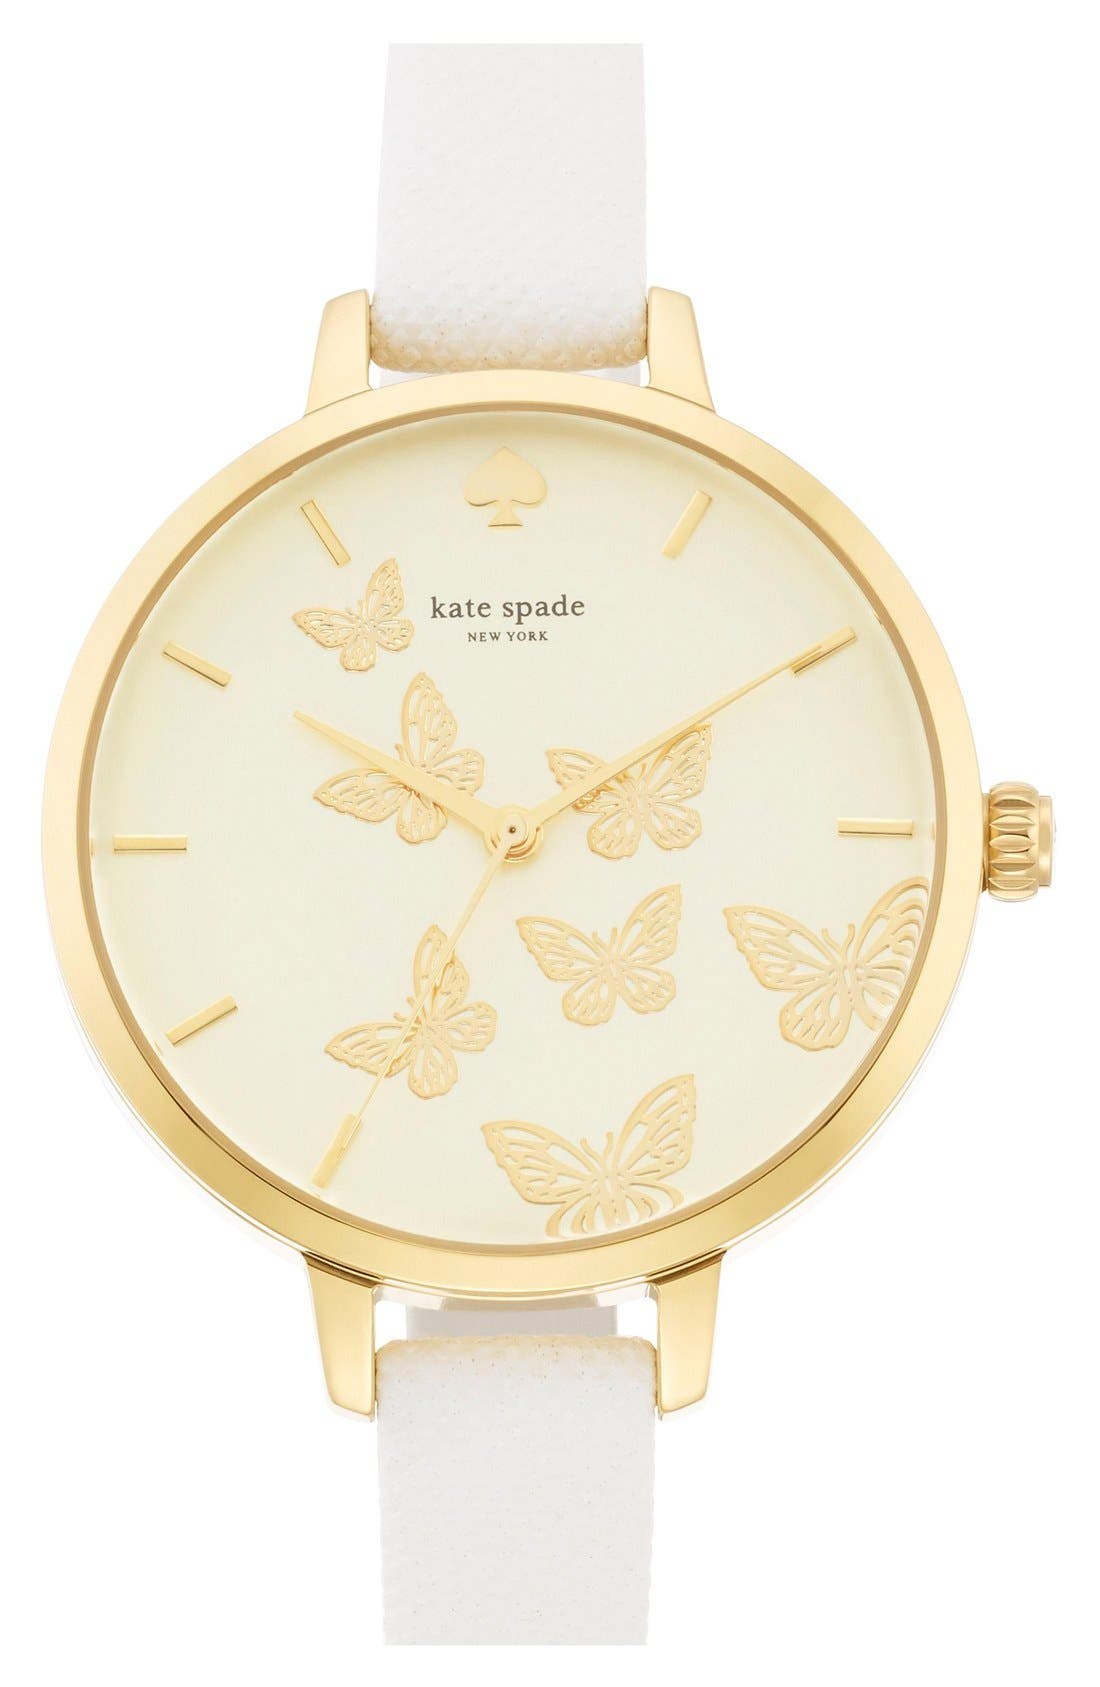 Main Image - kate spade new york 'metro' butterfly dial leather strap watch, 34mm